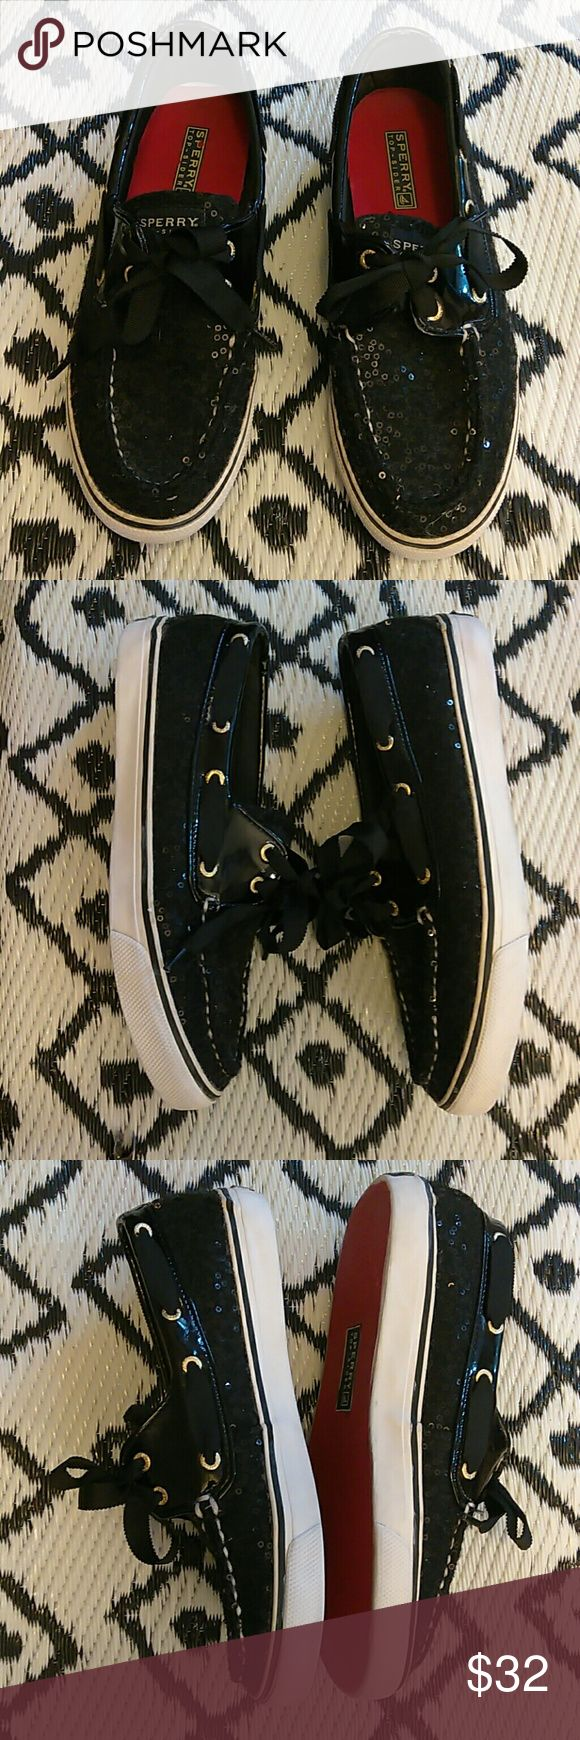 Sperry Top-Sider Shoes Sperry black sequin top siders are in excellent condition. Very little signs of wear on bottom. Clean inside and out. Sperry Top-Sider Shoes Flats & Loafers